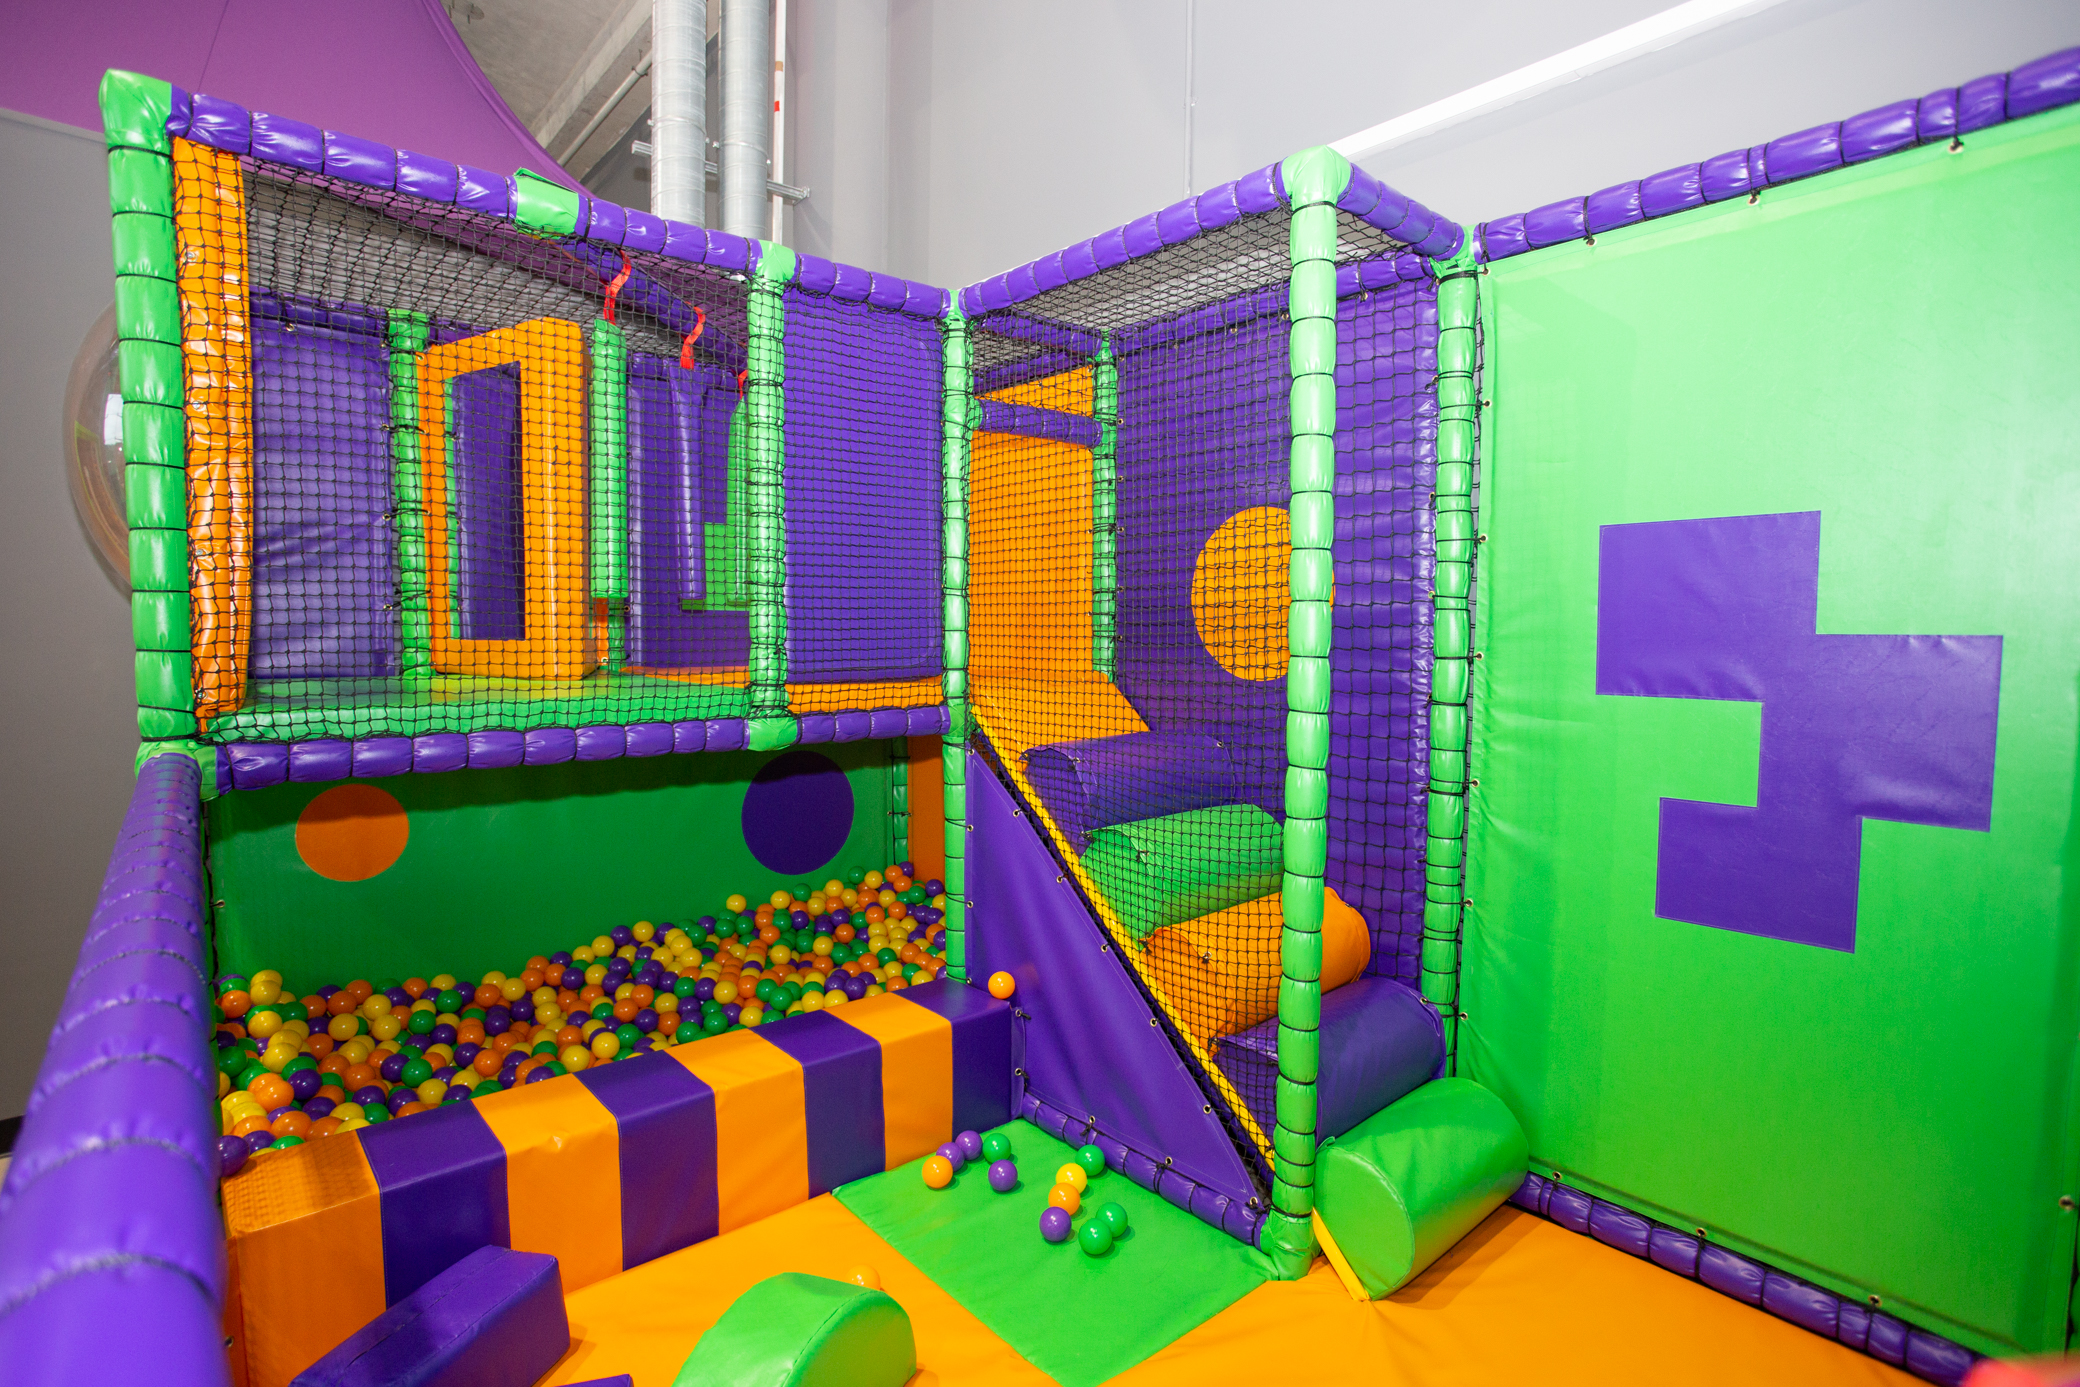 SOFT PLAY AVAILABLE FOR UNDER 4'S